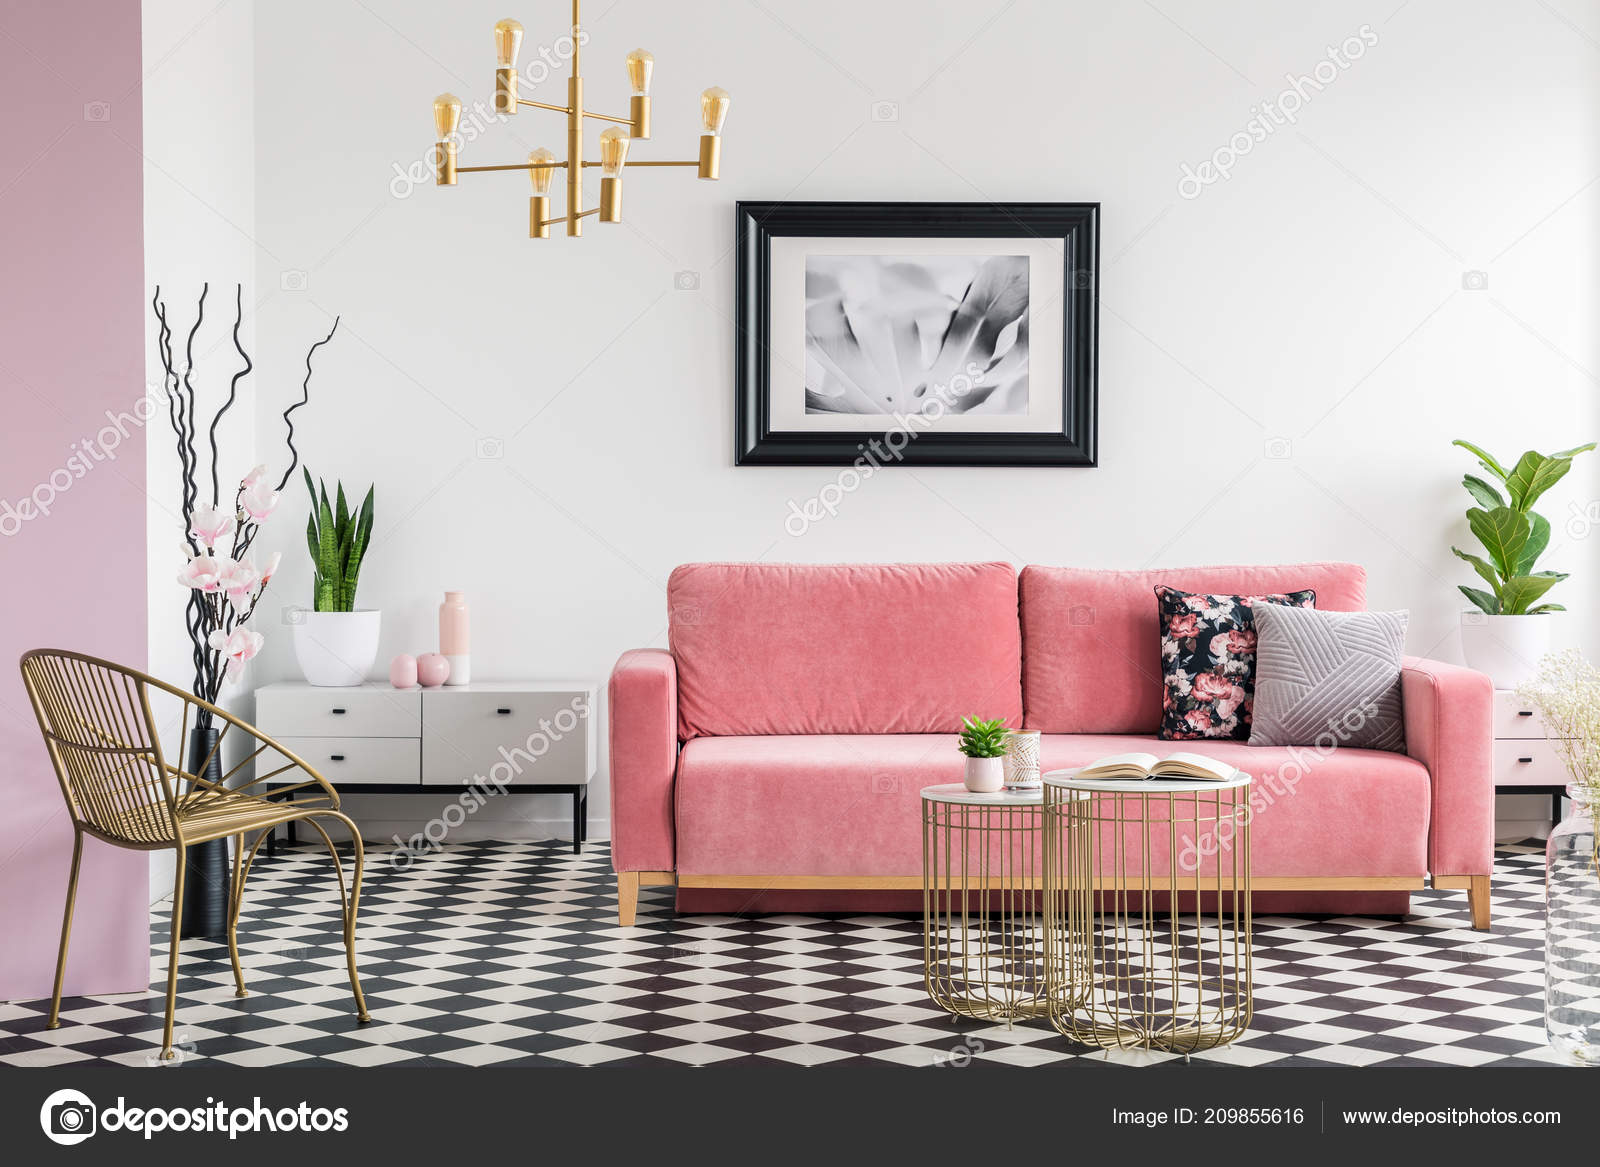 Astounding Gold Chair Pink Sofa Modern Living Room Interior Poster Interior Design Ideas Gentotthenellocom